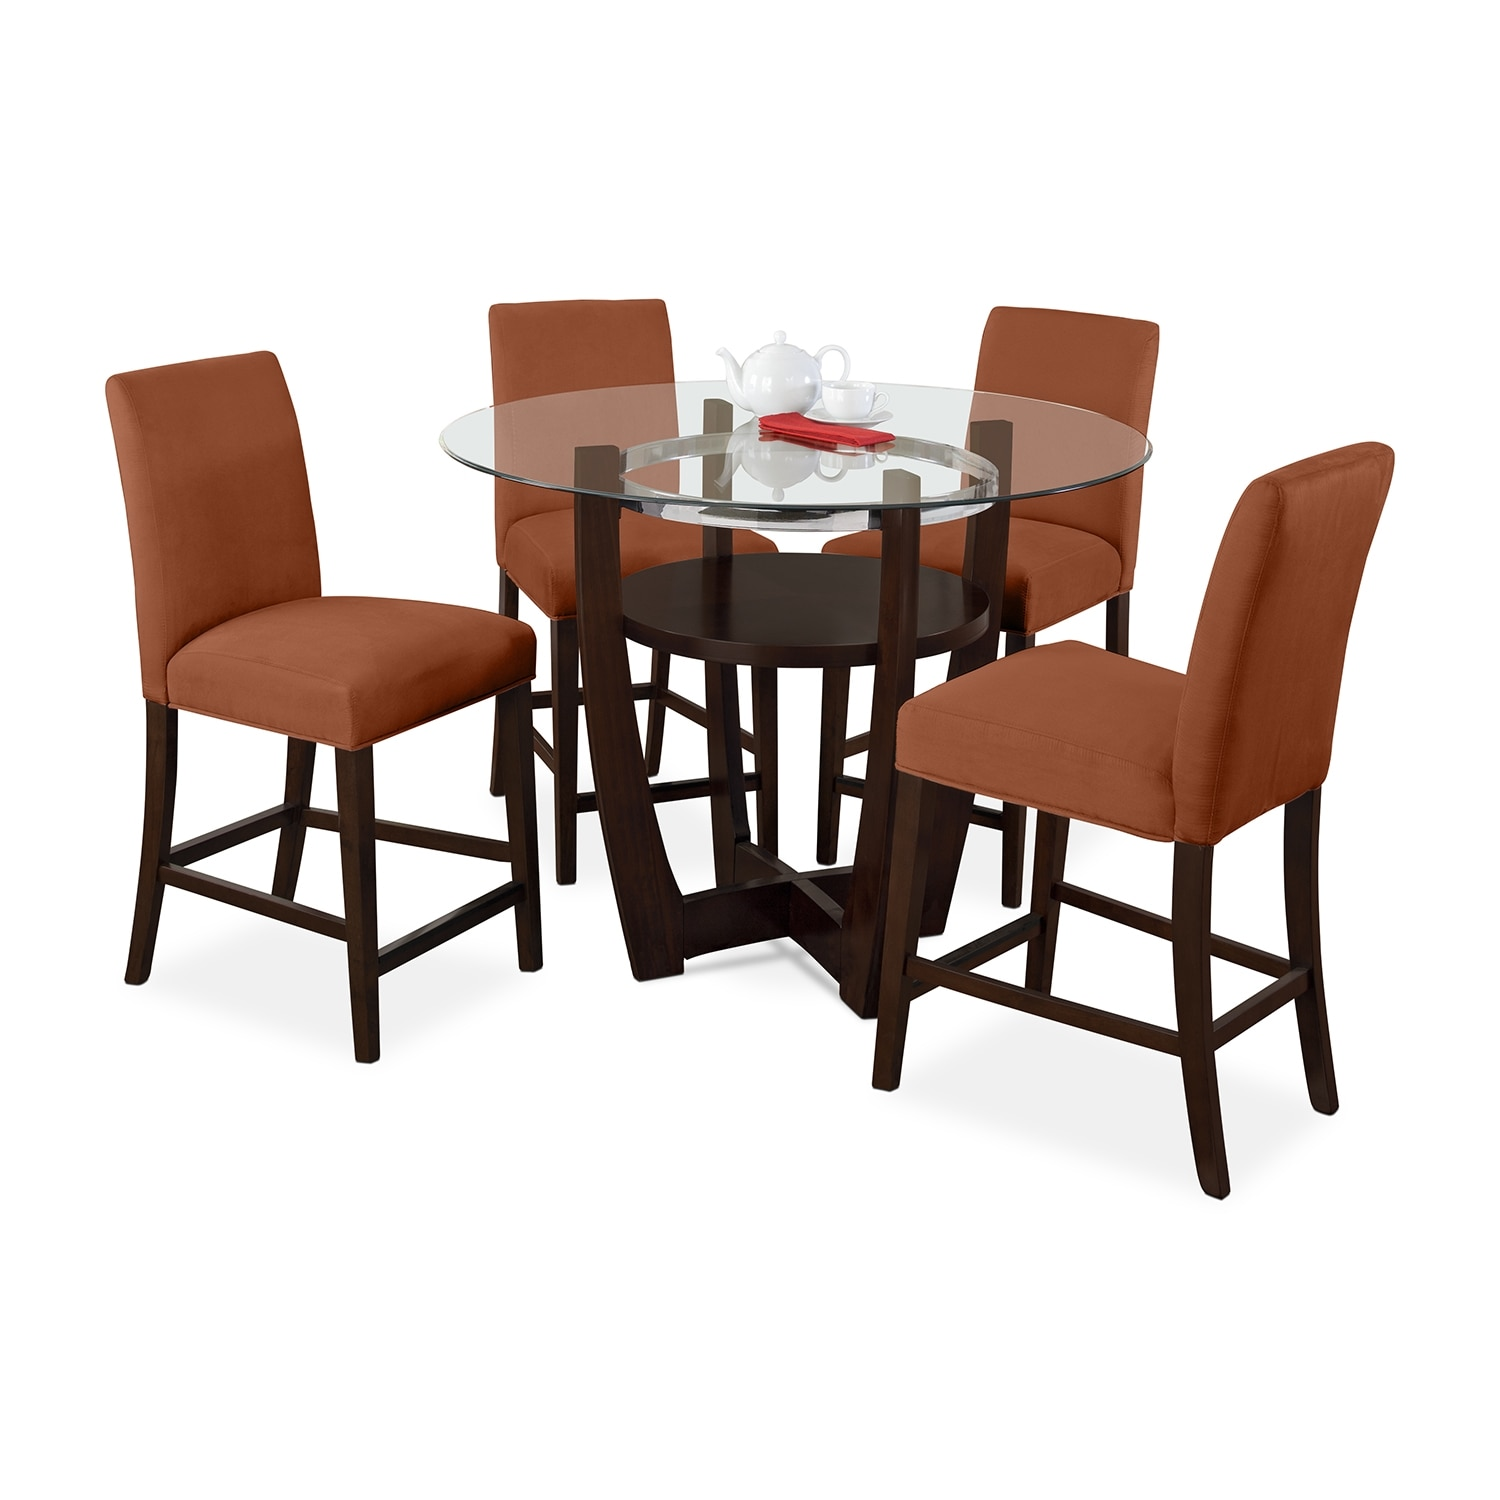 Orange Kitchen Table And Chairs: Alcove Counter-Height Dinette With 4 Side Chairs